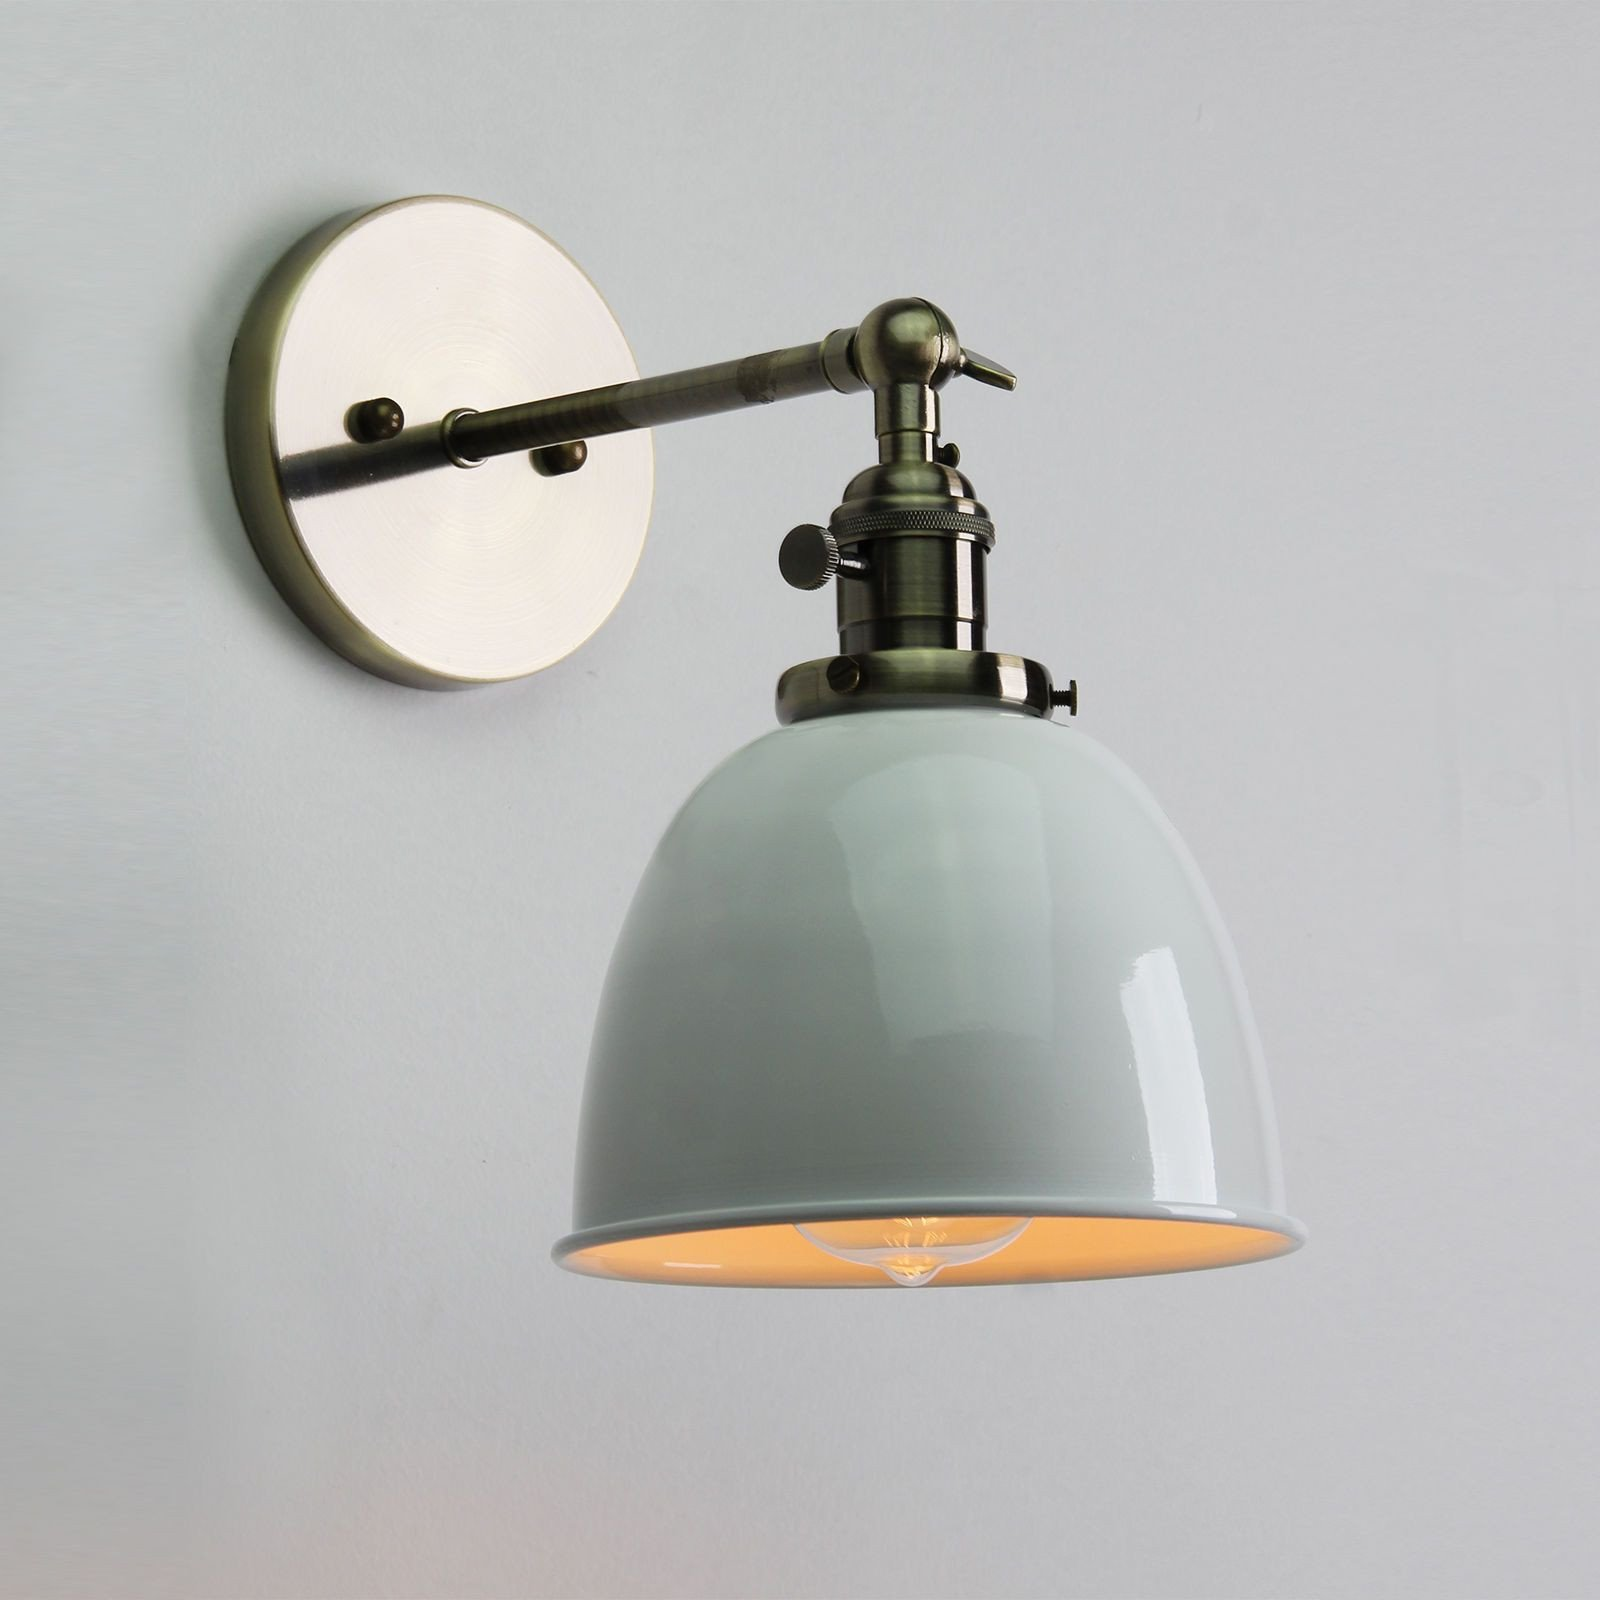 Wall Lamps for Bedroom New It Has A Clean Industrial Look that is Super Cool the Glass